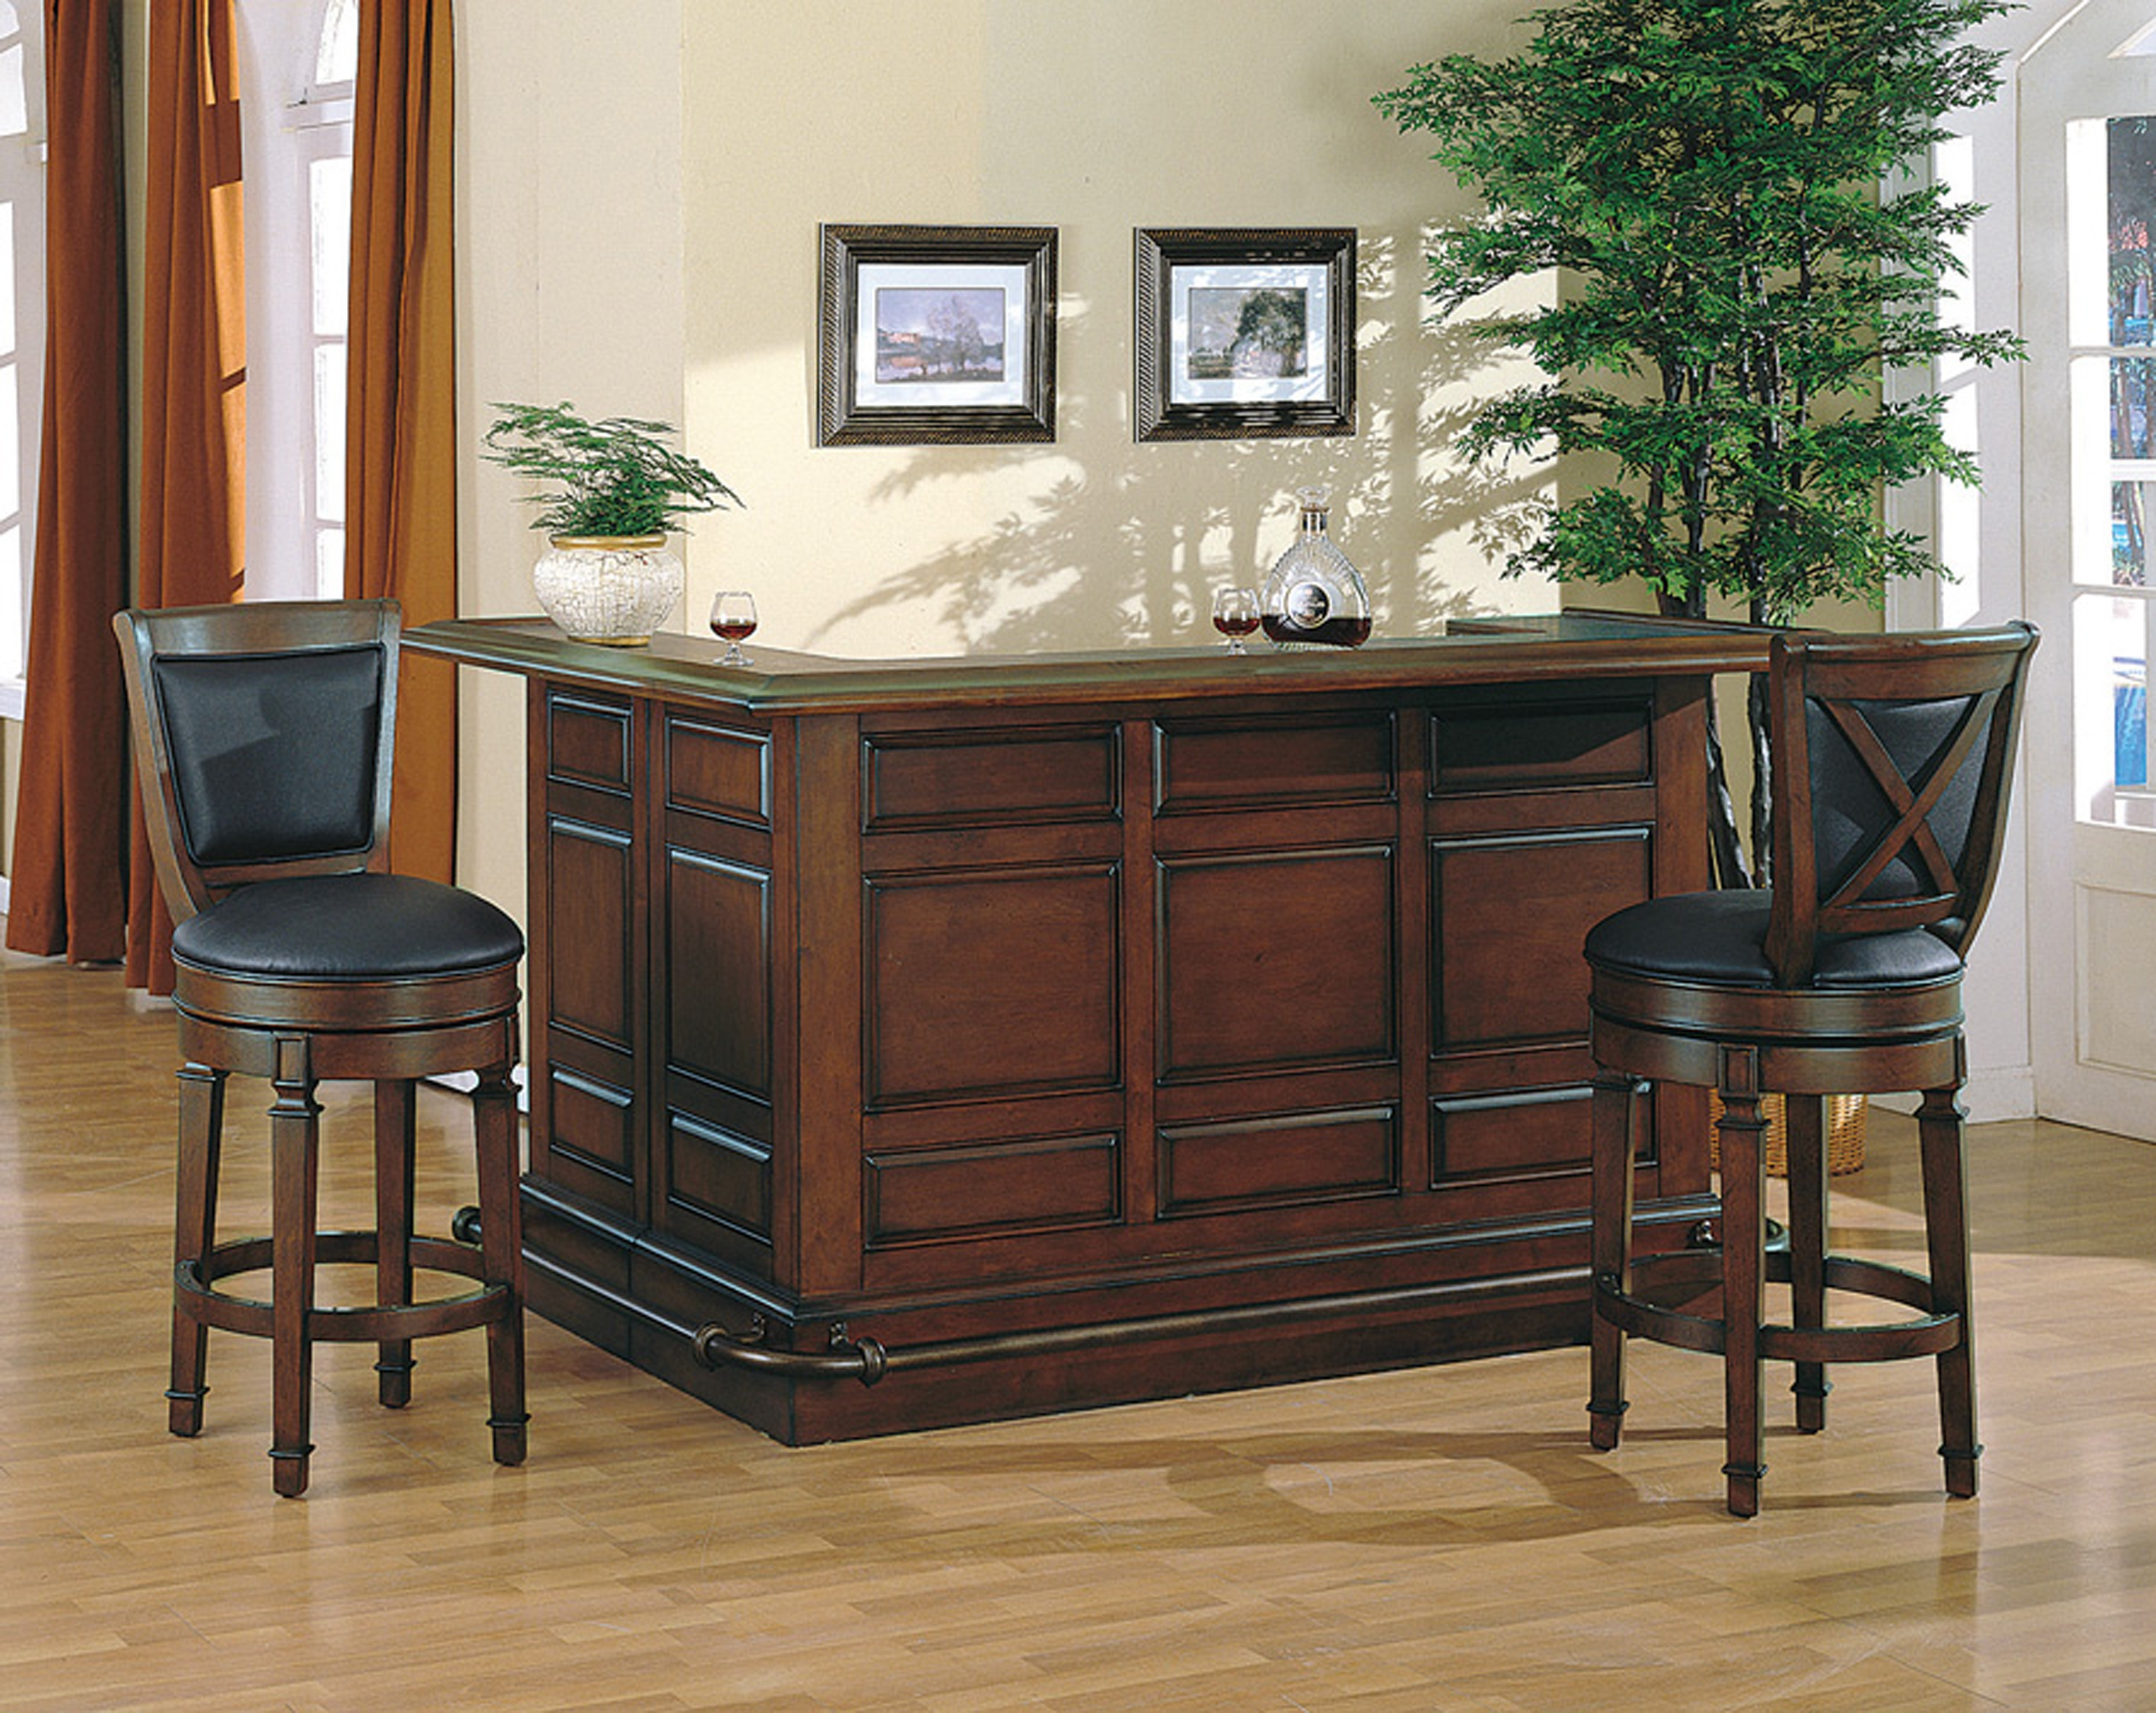 inspiration polish your furniture with burnished walnut stain for best